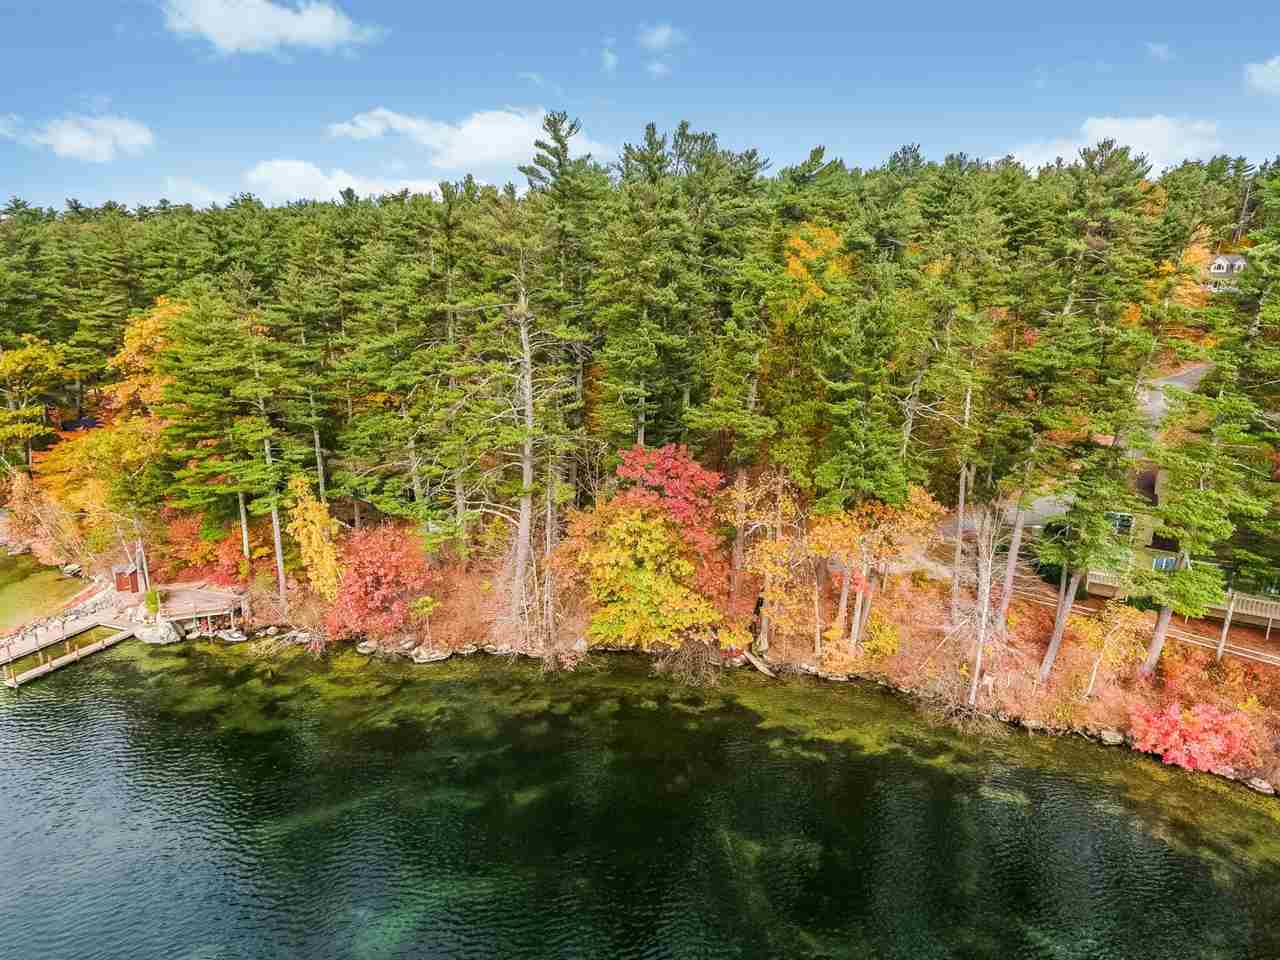 Wolfeboro NH Land mls no. 4666504 with 115 ft. Owned waterfront